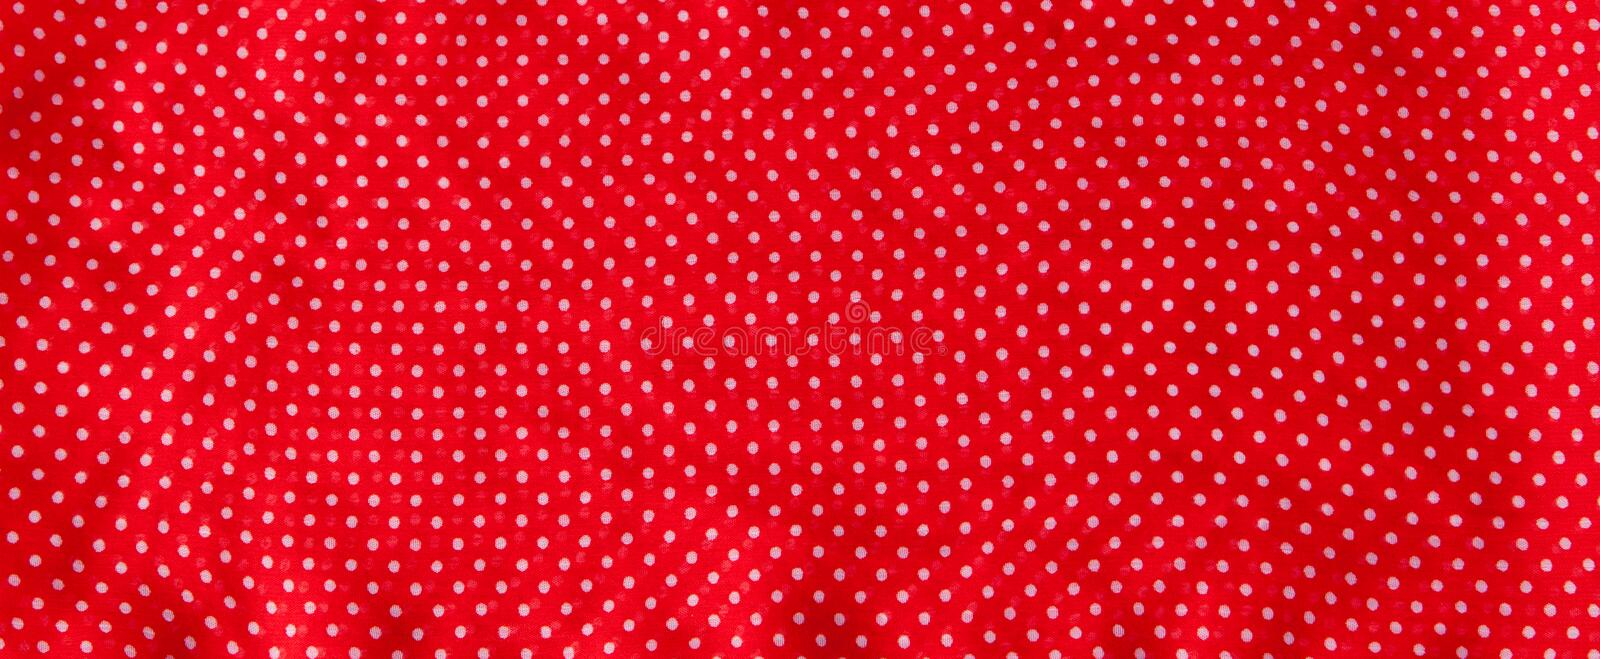 Red fabric with the white polka dots as a background texture composition stock images